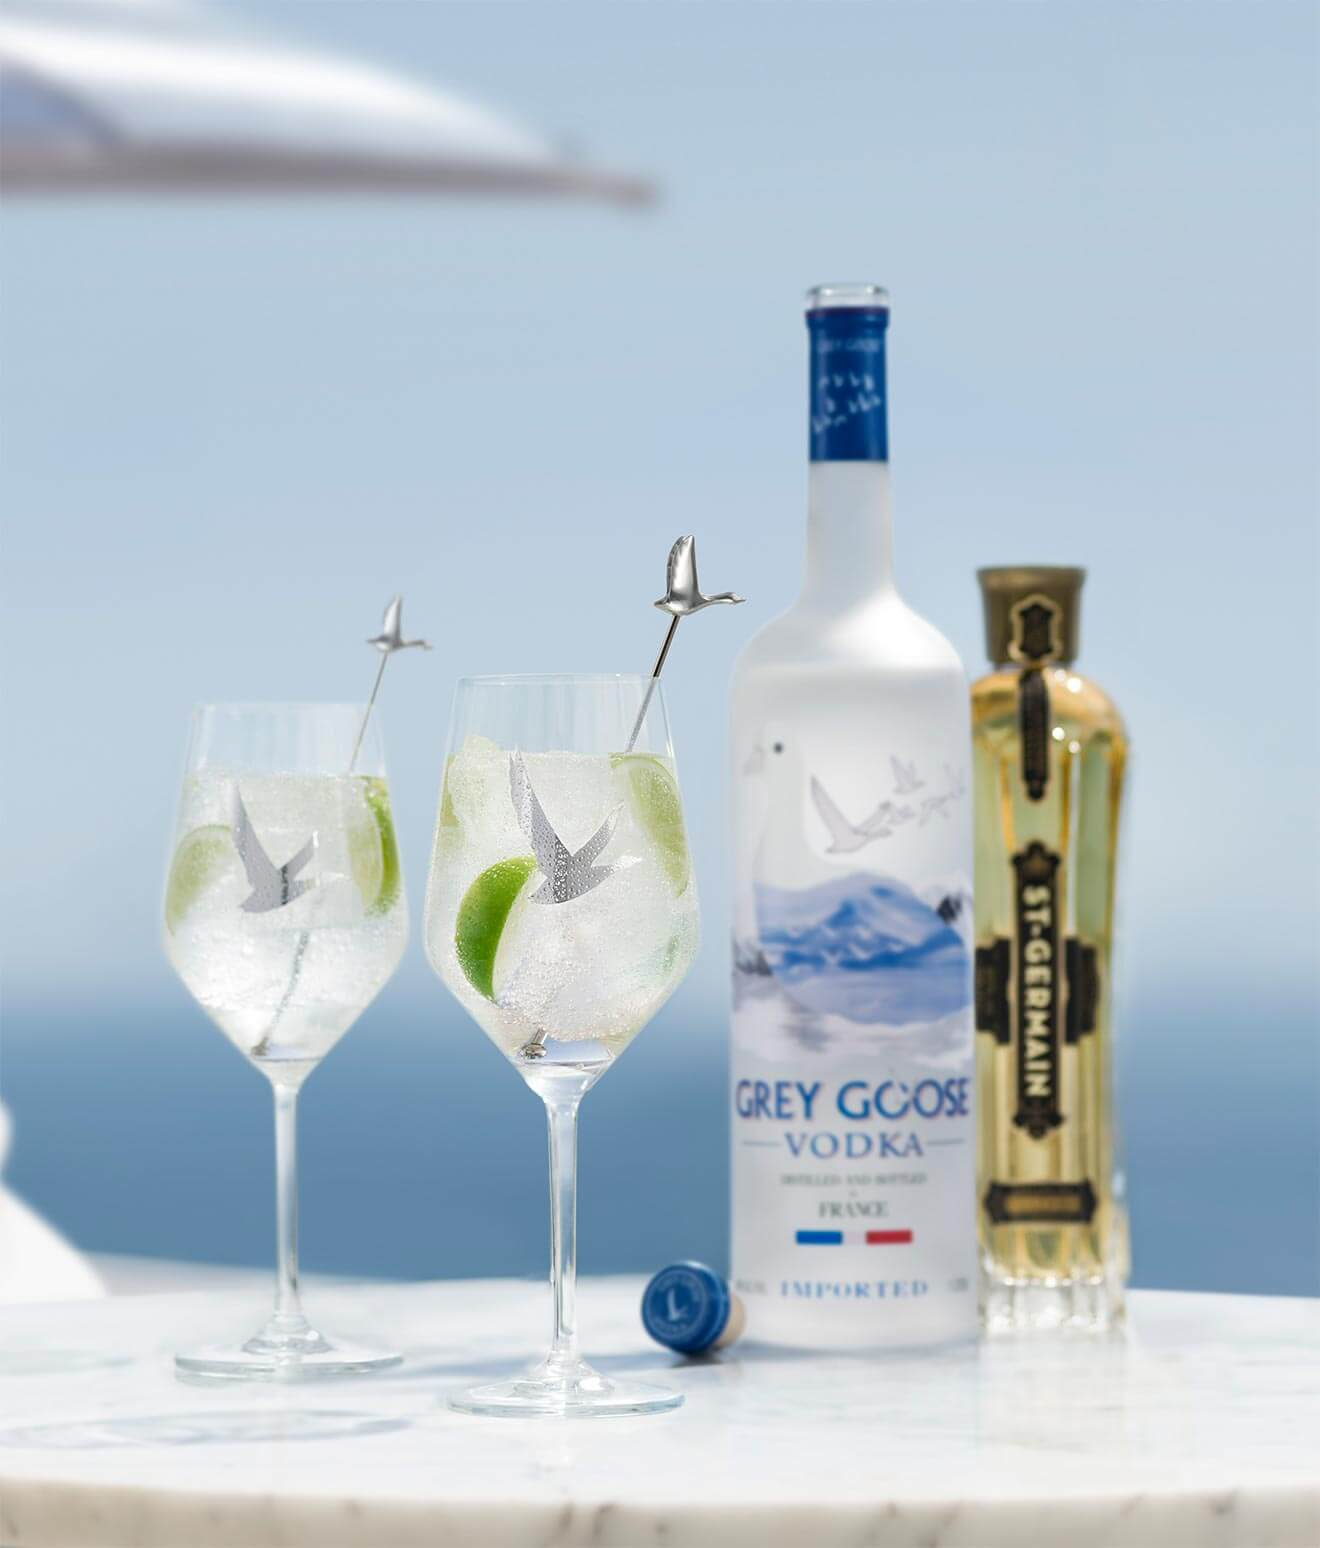 Le Grand Fizz cocktail from Grey Goose Vodka, cocktail recipes